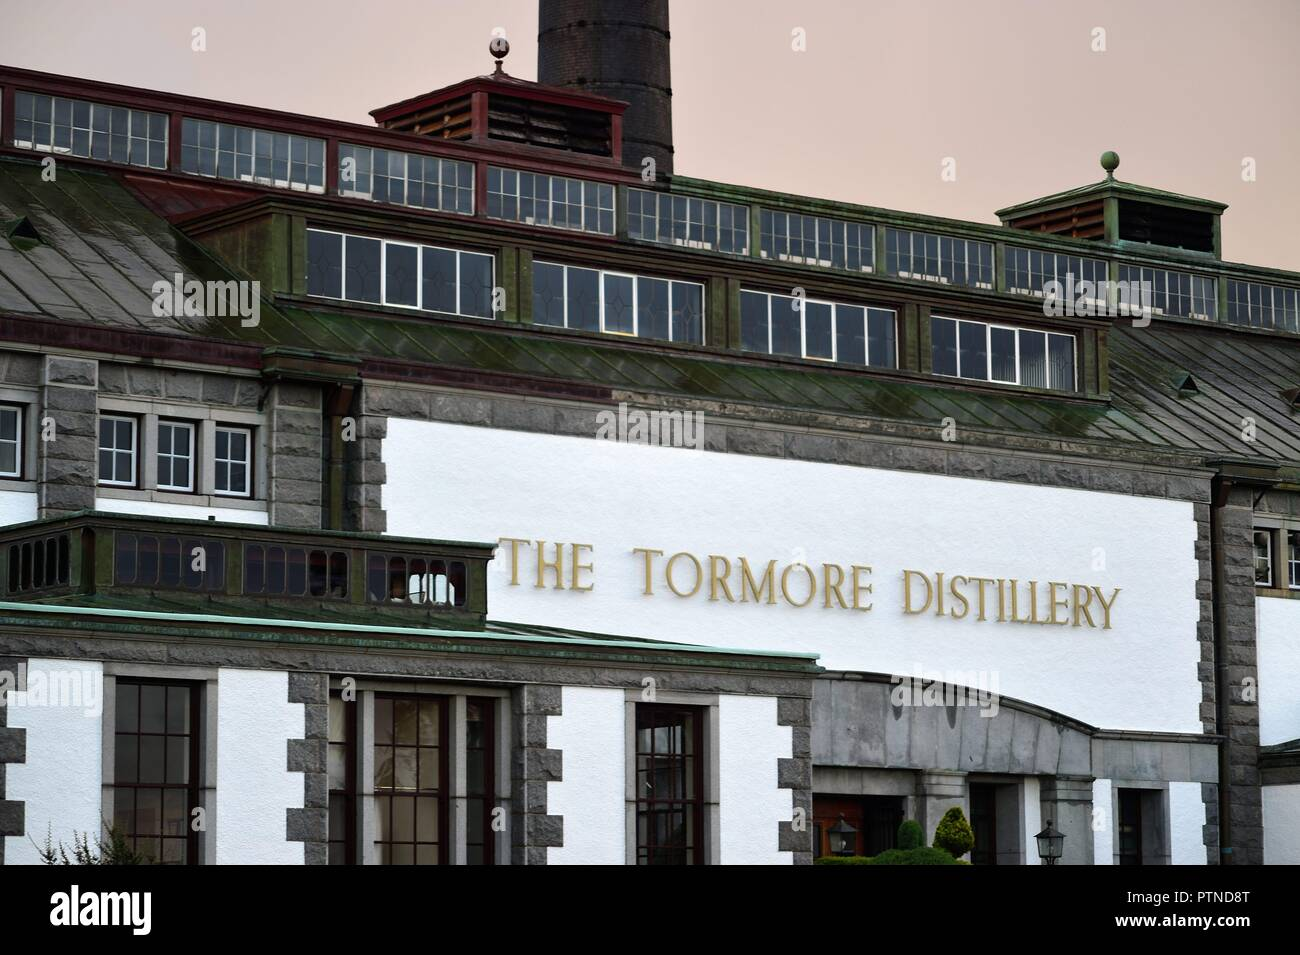 Grantown-on-Spey, Morayshire, Scotland, United Kingdom. The Tormore Distillery in the Highlands of Scotland. Tormore was founded in 1958. - Stock Image